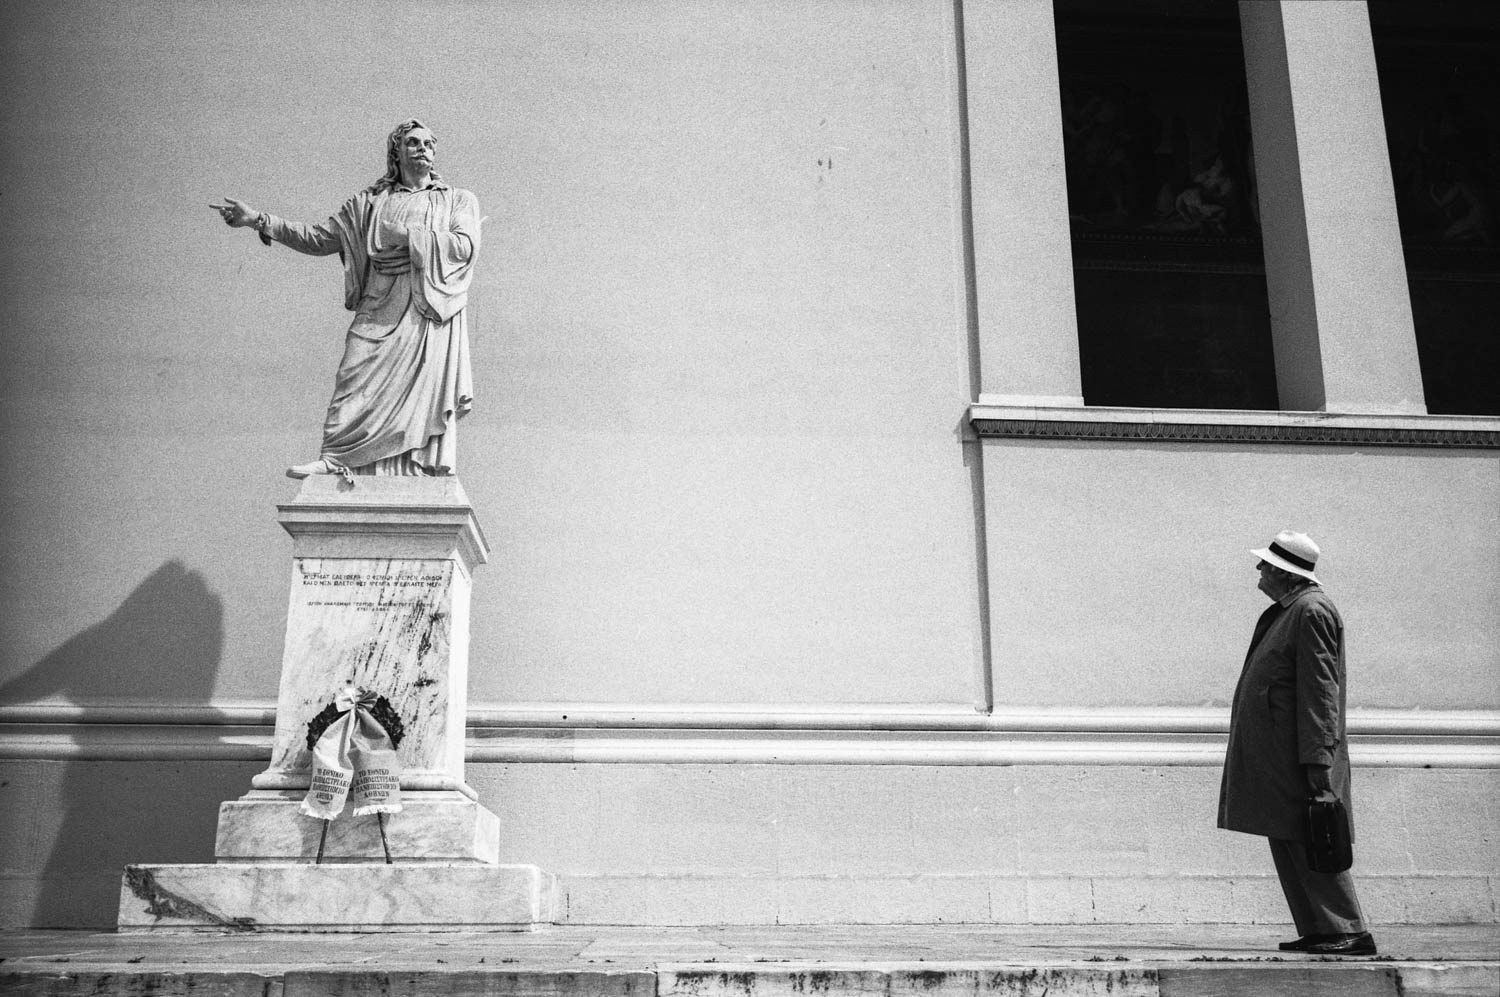 A man stares at a statue on Acadimias Avenue in central Athens